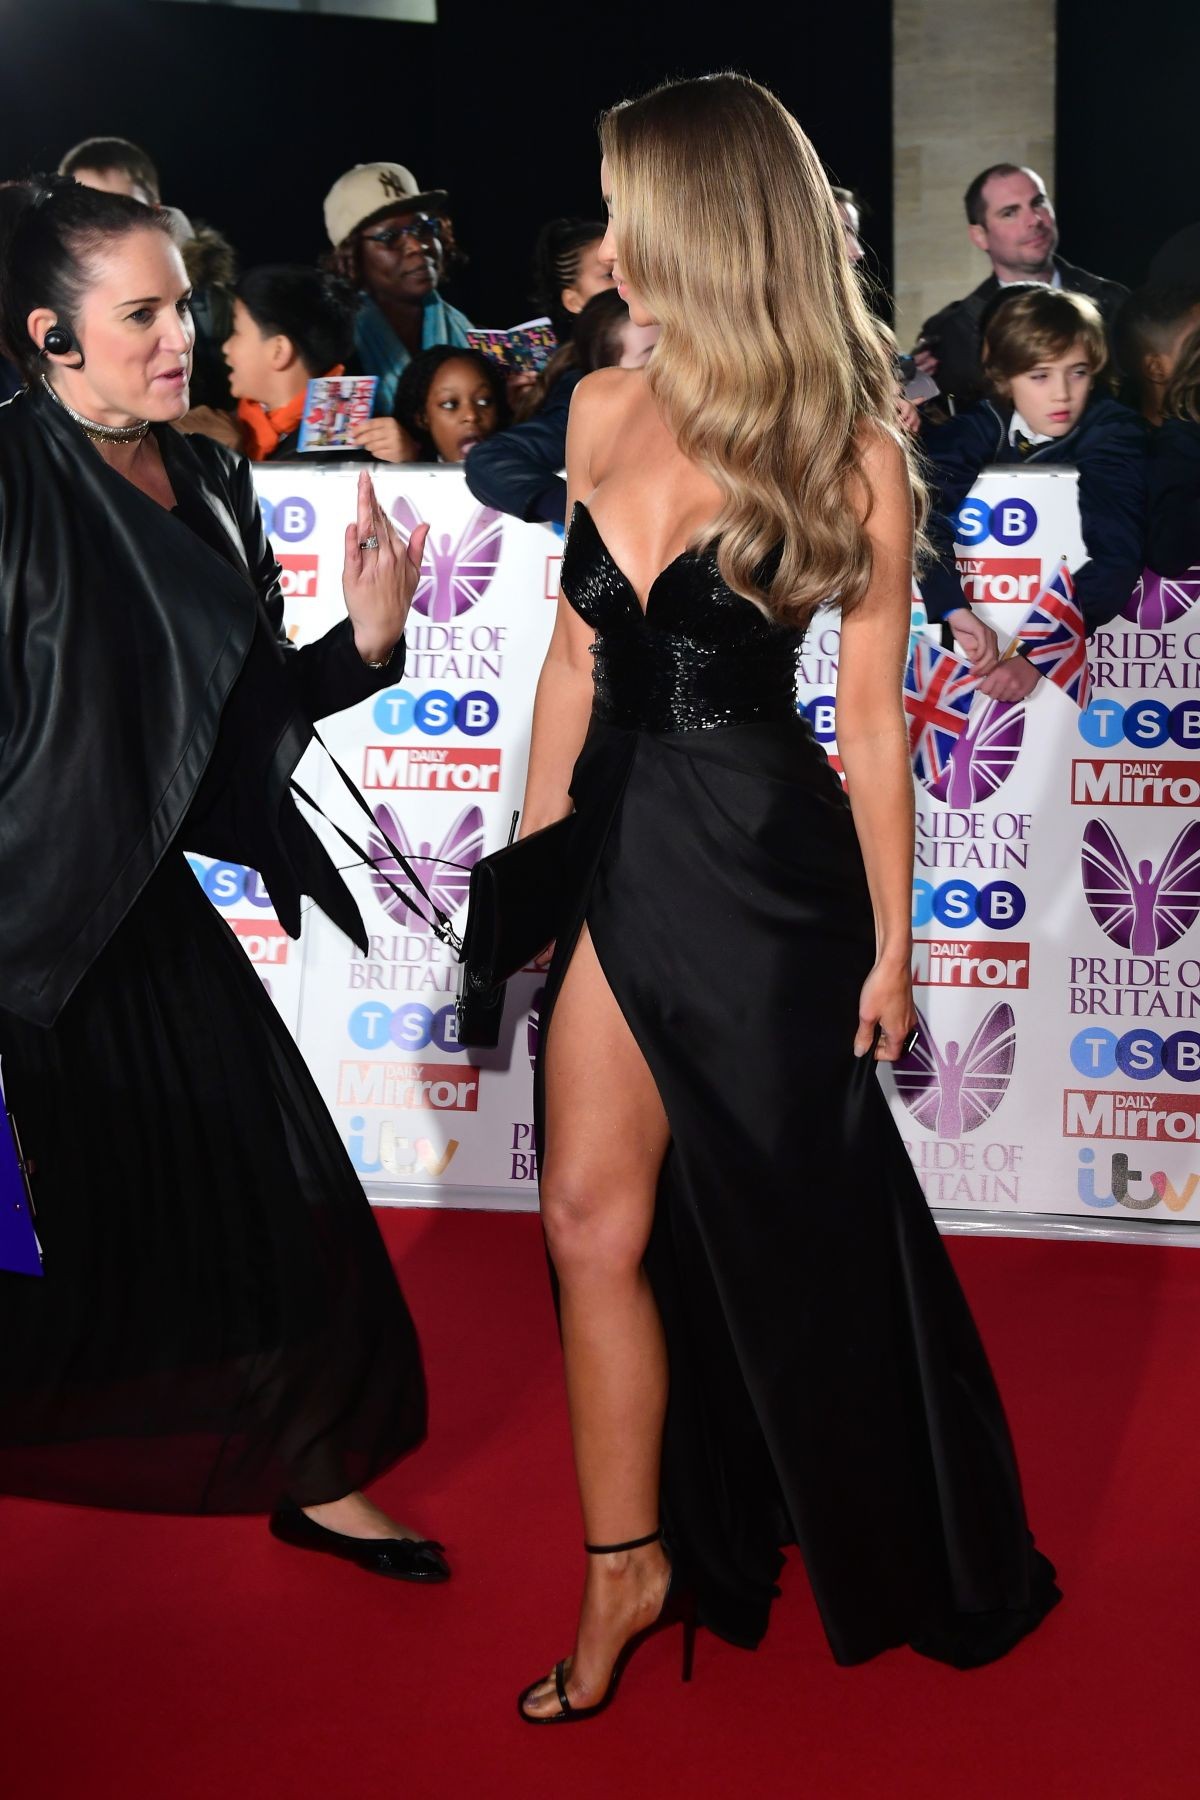 Lauren Pope At Pride of Britain Awards 2017 in London